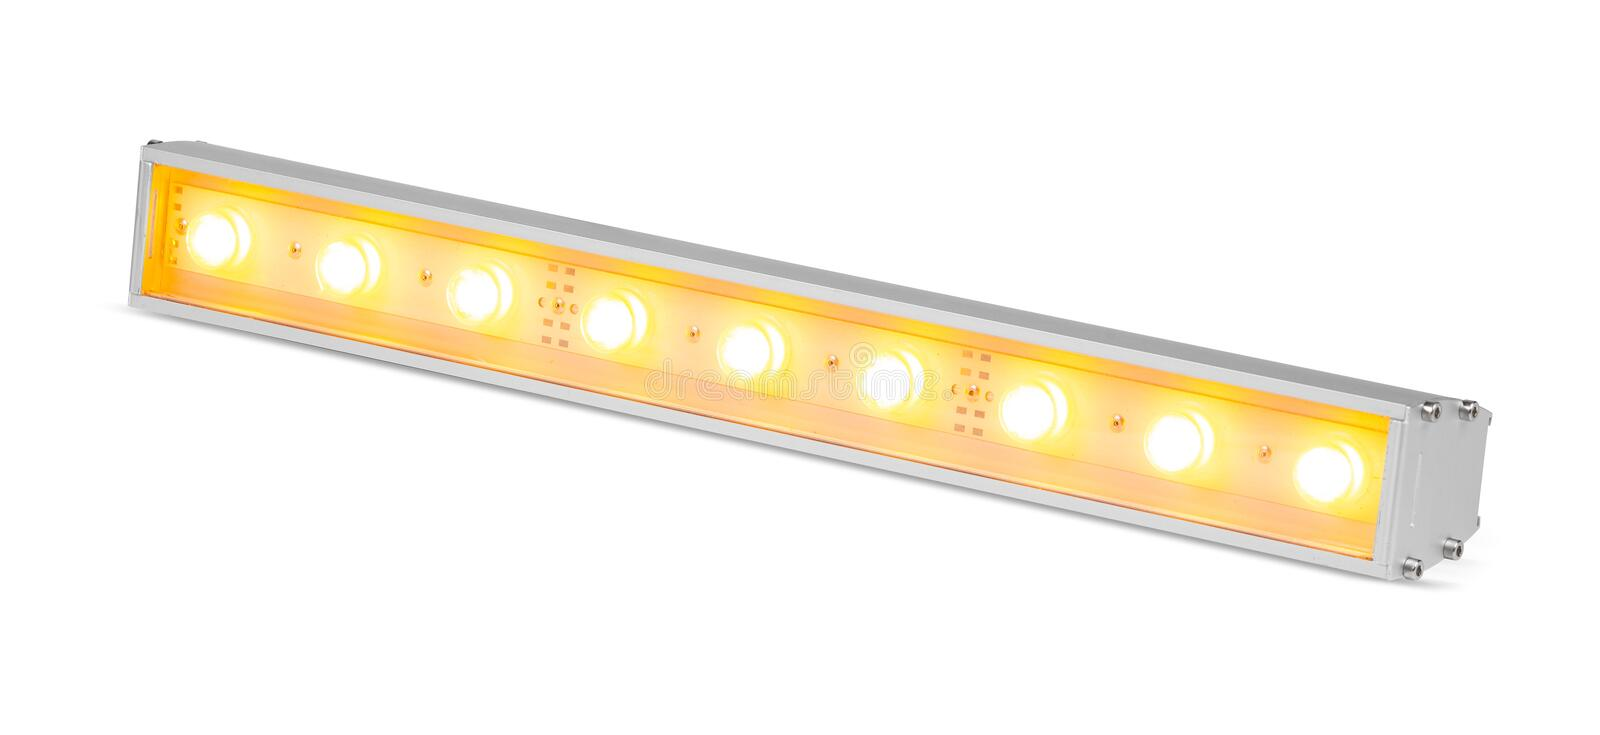 Yellow LED flood light outdoor projector lamp isolated on white background royalty free stock photography